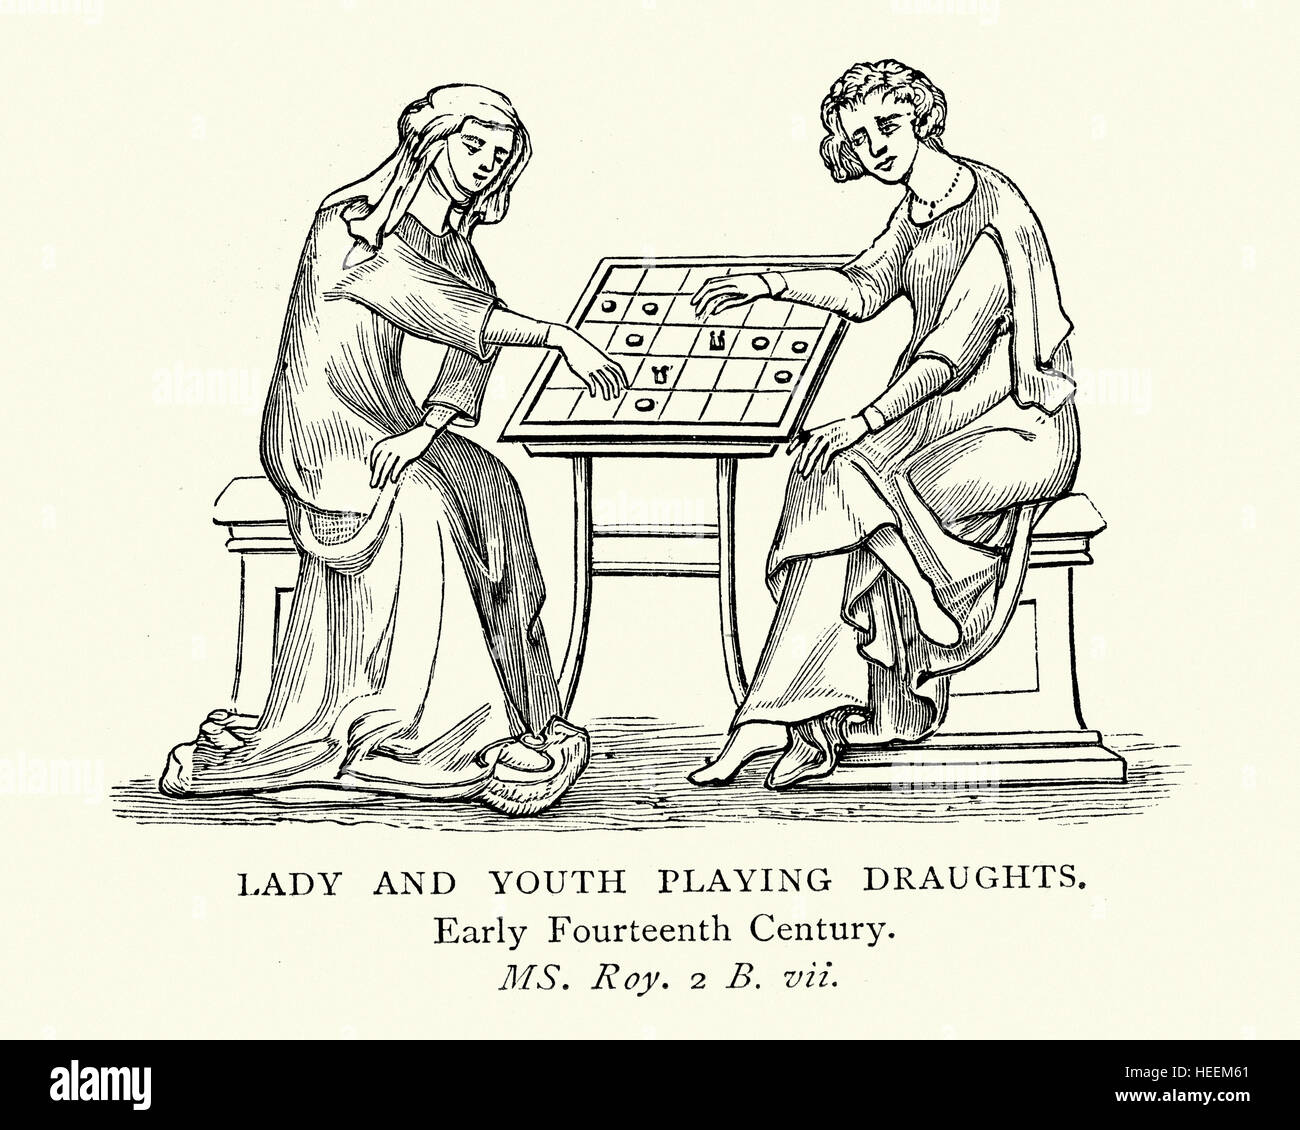 Medieval illustration of lady and youth playing a game of draughts, early 14th Century - Stock Image